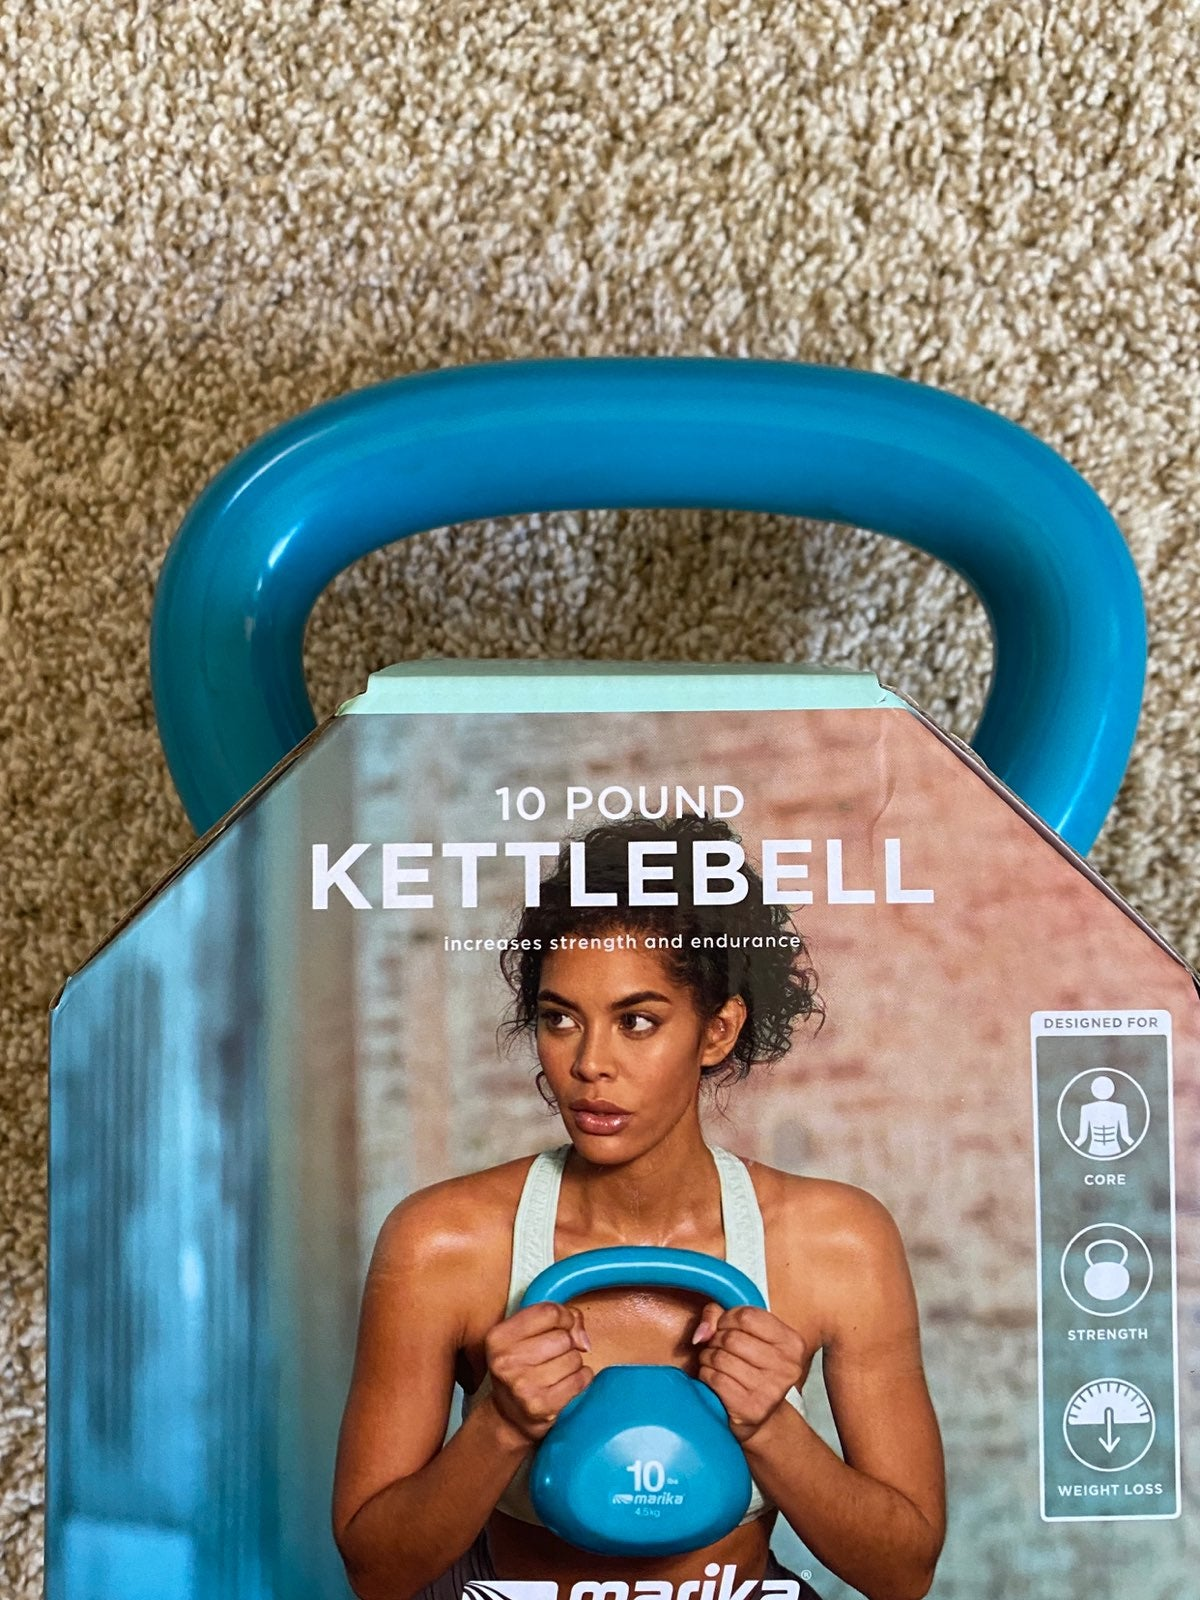 Marika 10 LB Pound Kettlebell Weight